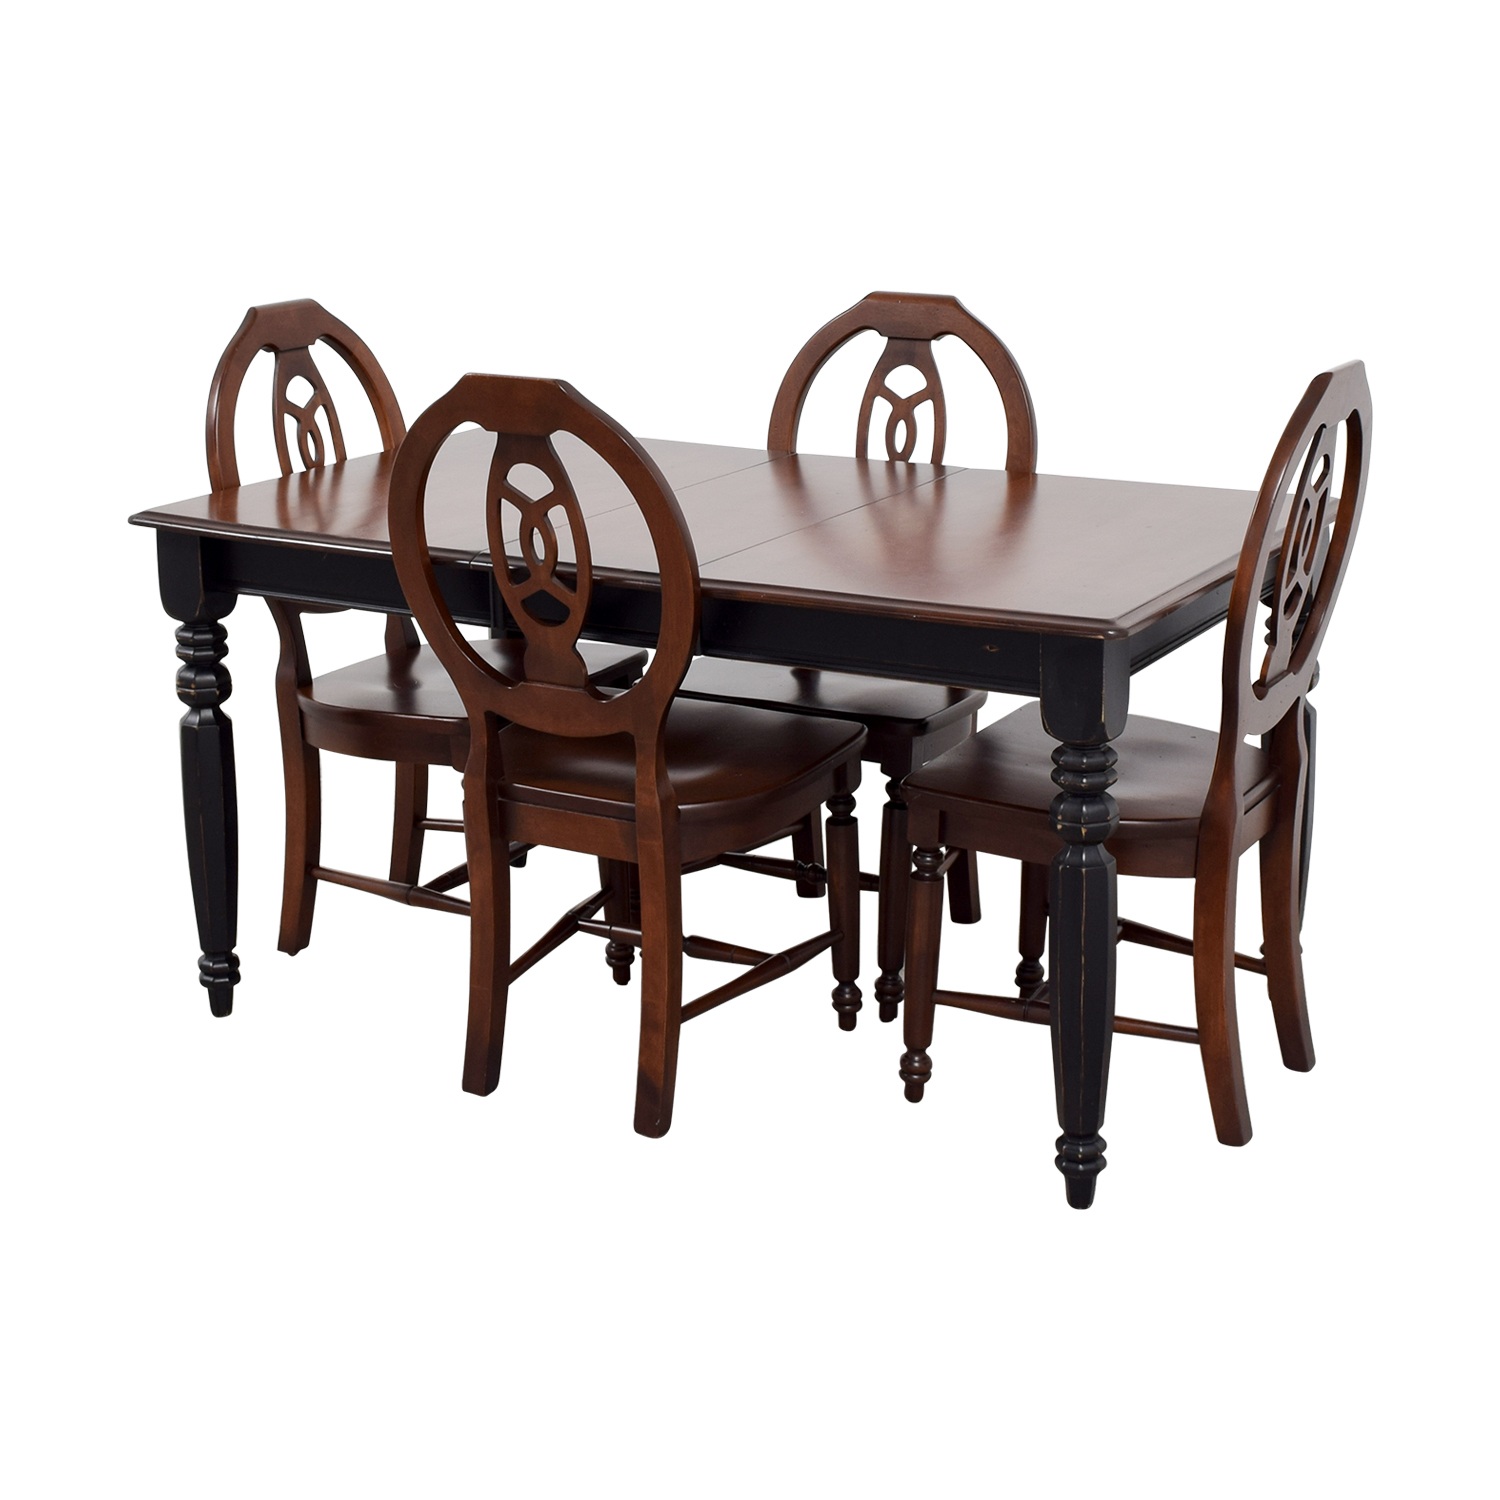 90 off classic wooden extendable dining set tables. Black Bedroom Furniture Sets. Home Design Ideas